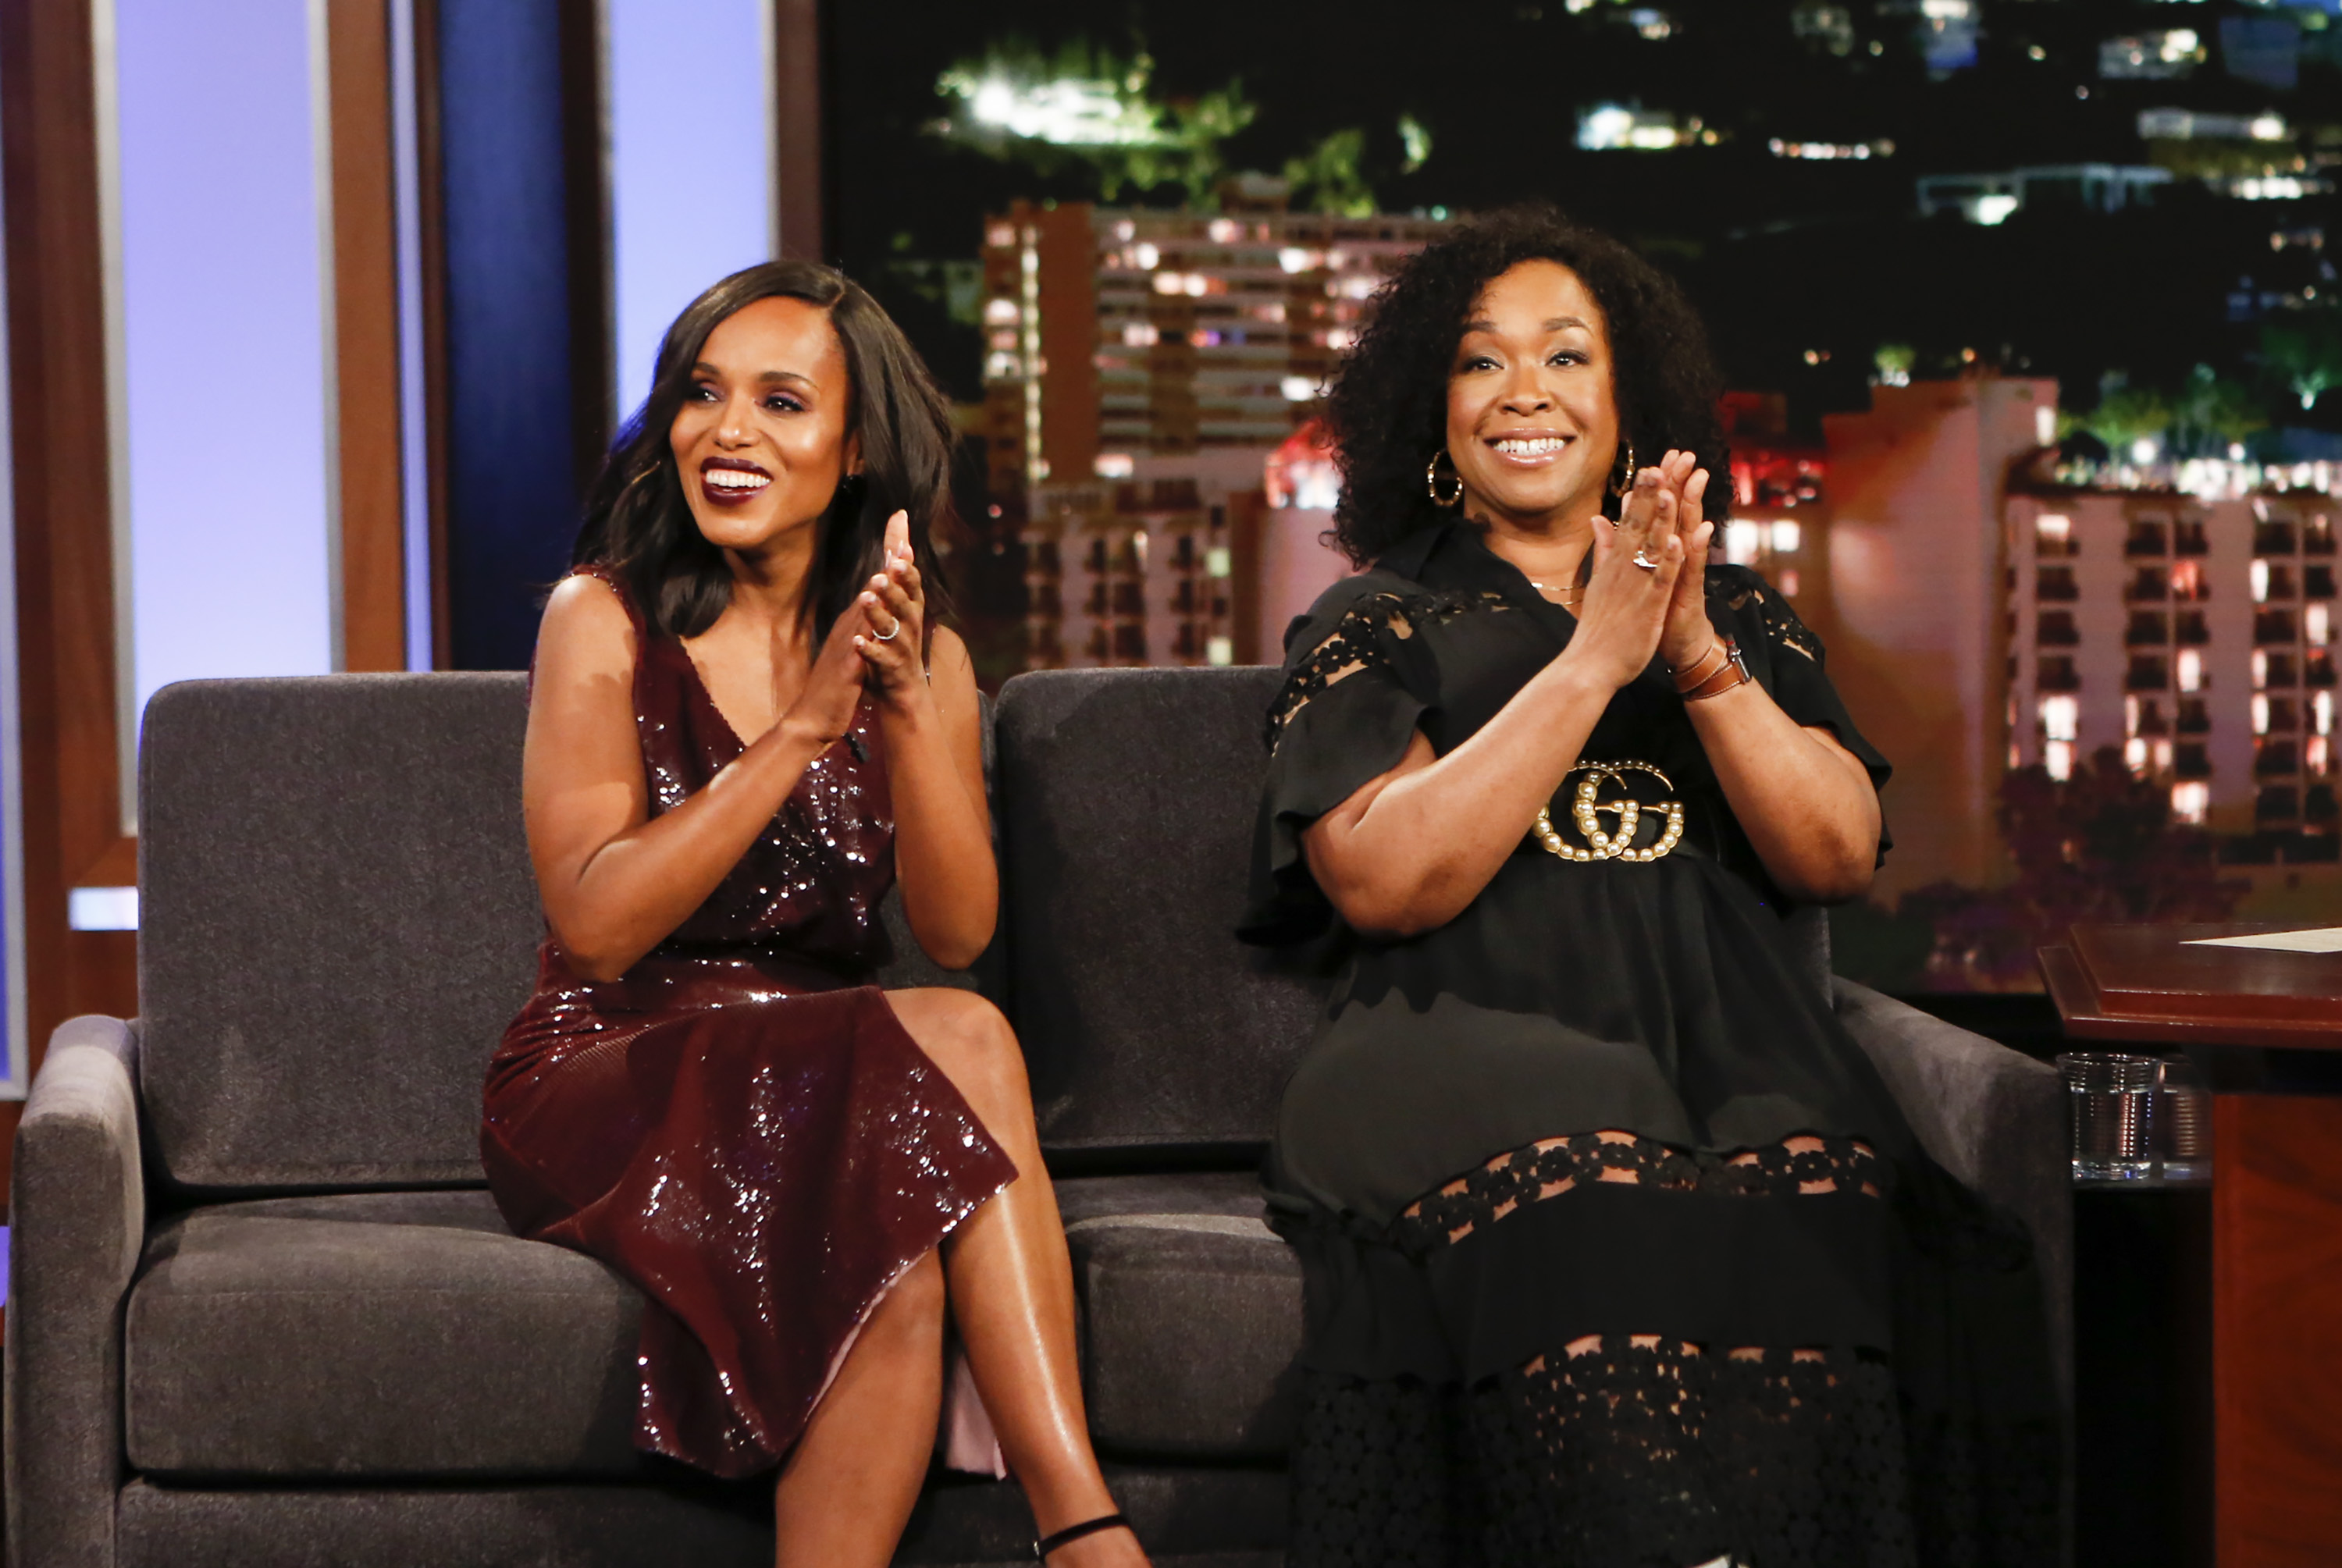 Kerry Washington and Shonda Rhimes sit side by side on a couch, clapping and smiling.